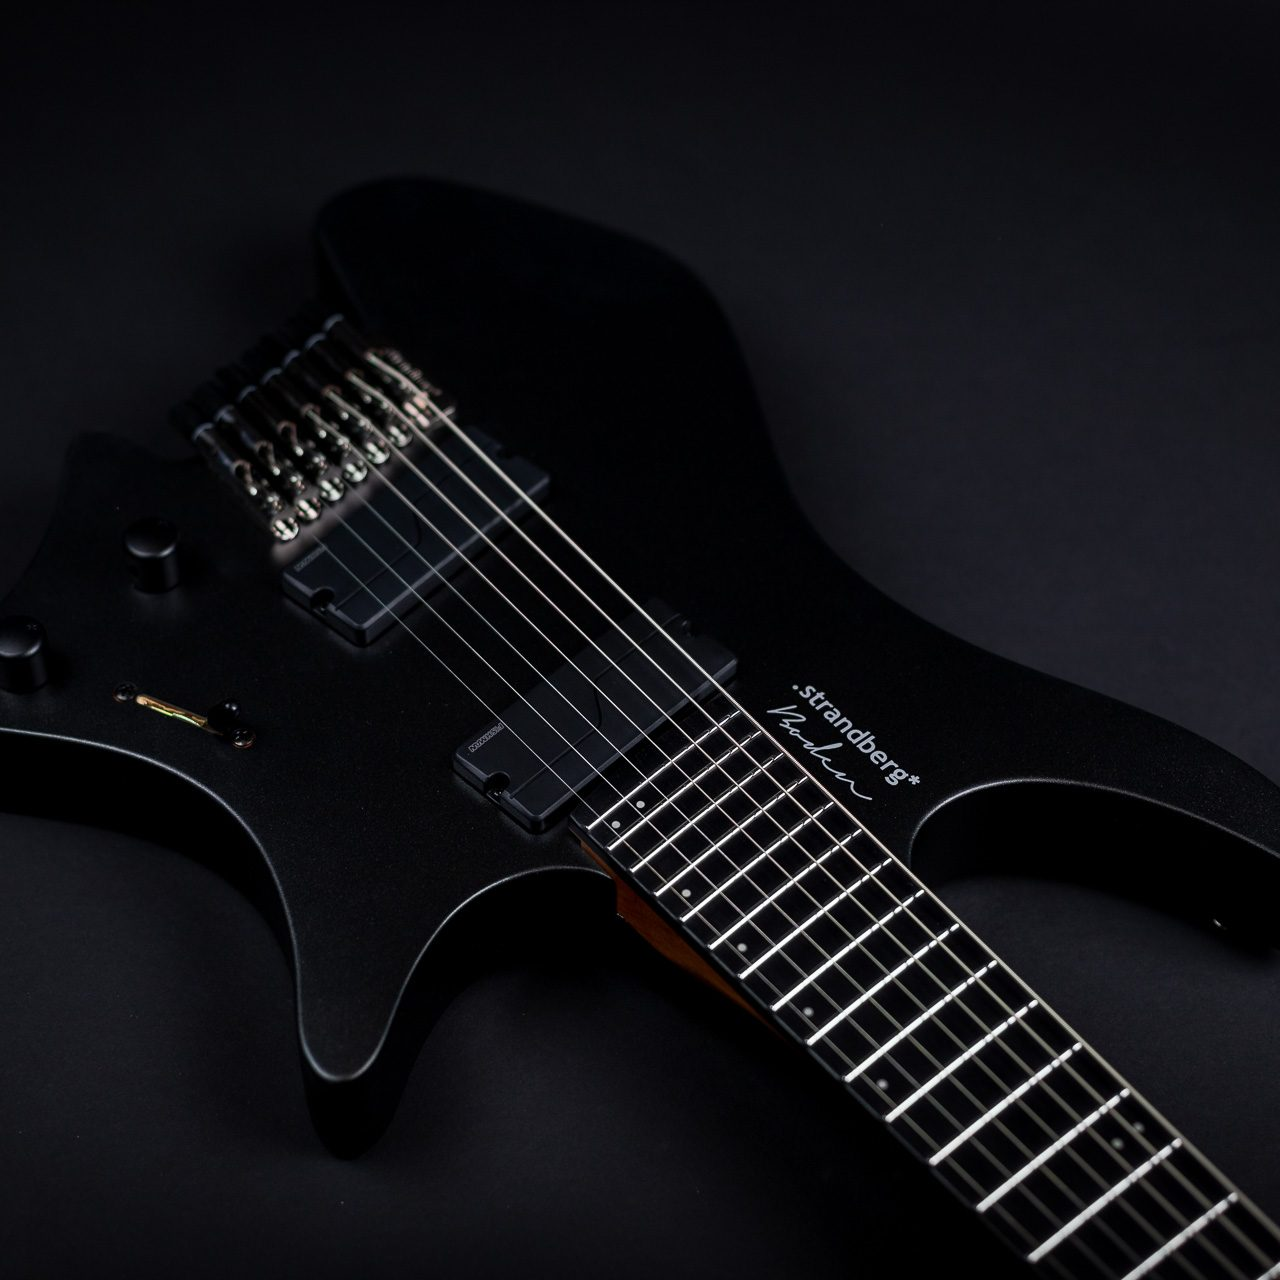 Headless guitar boden metal black 8 string front view